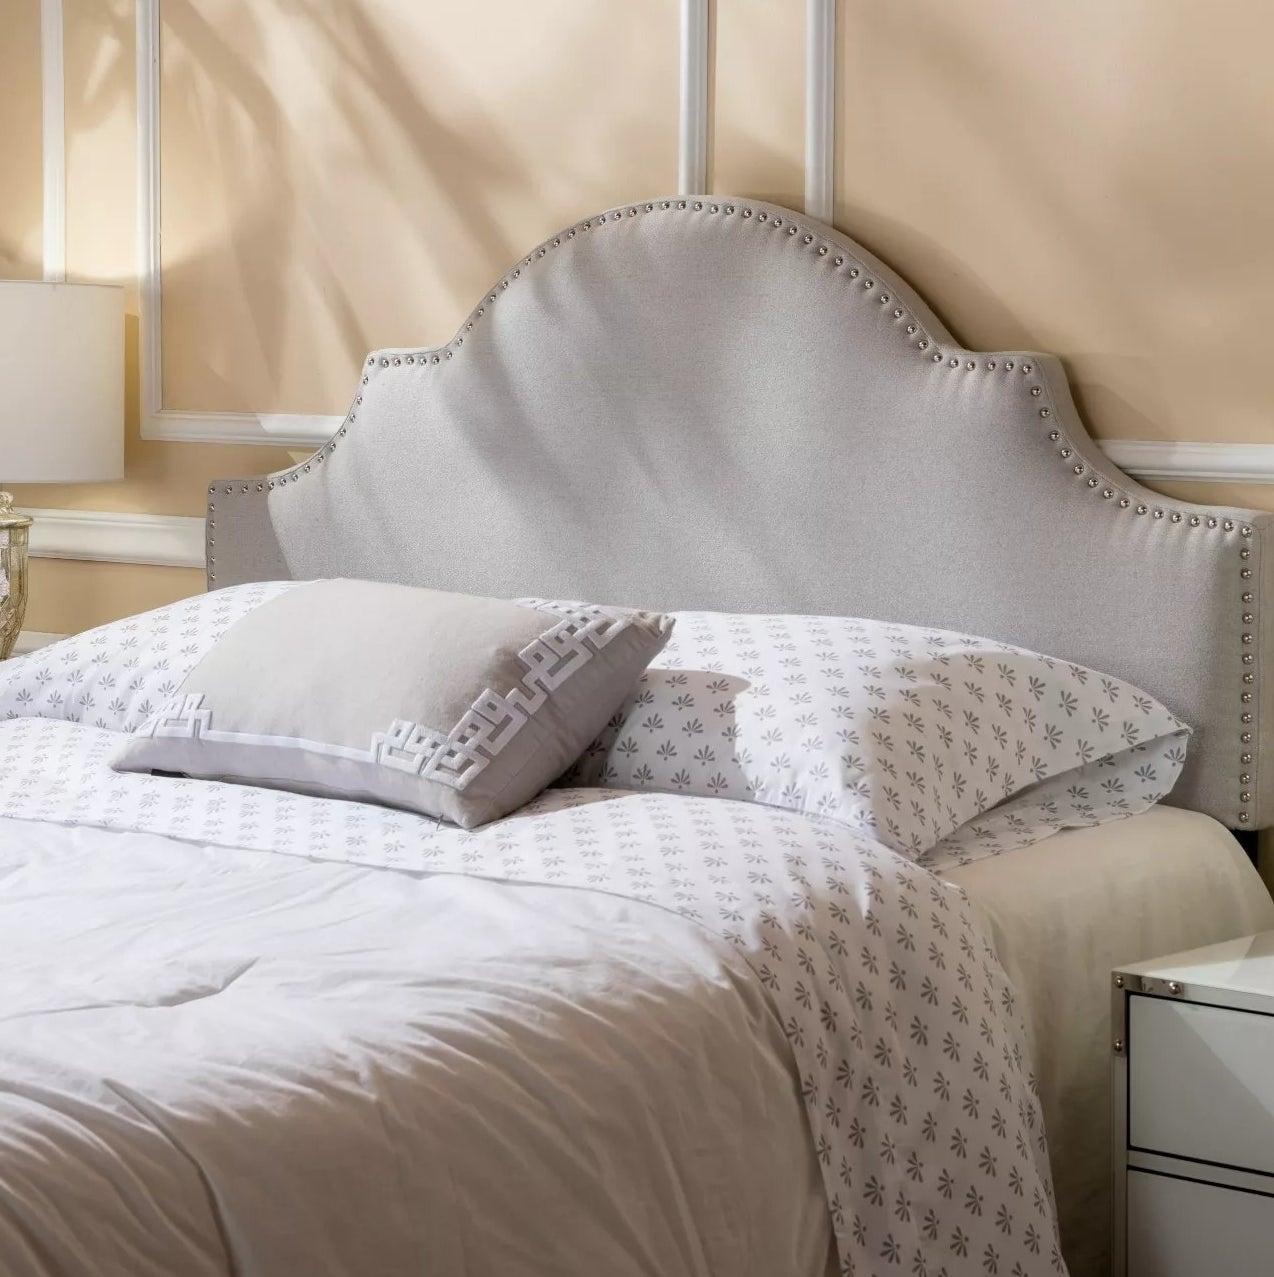 The upholstered headboard in light gray